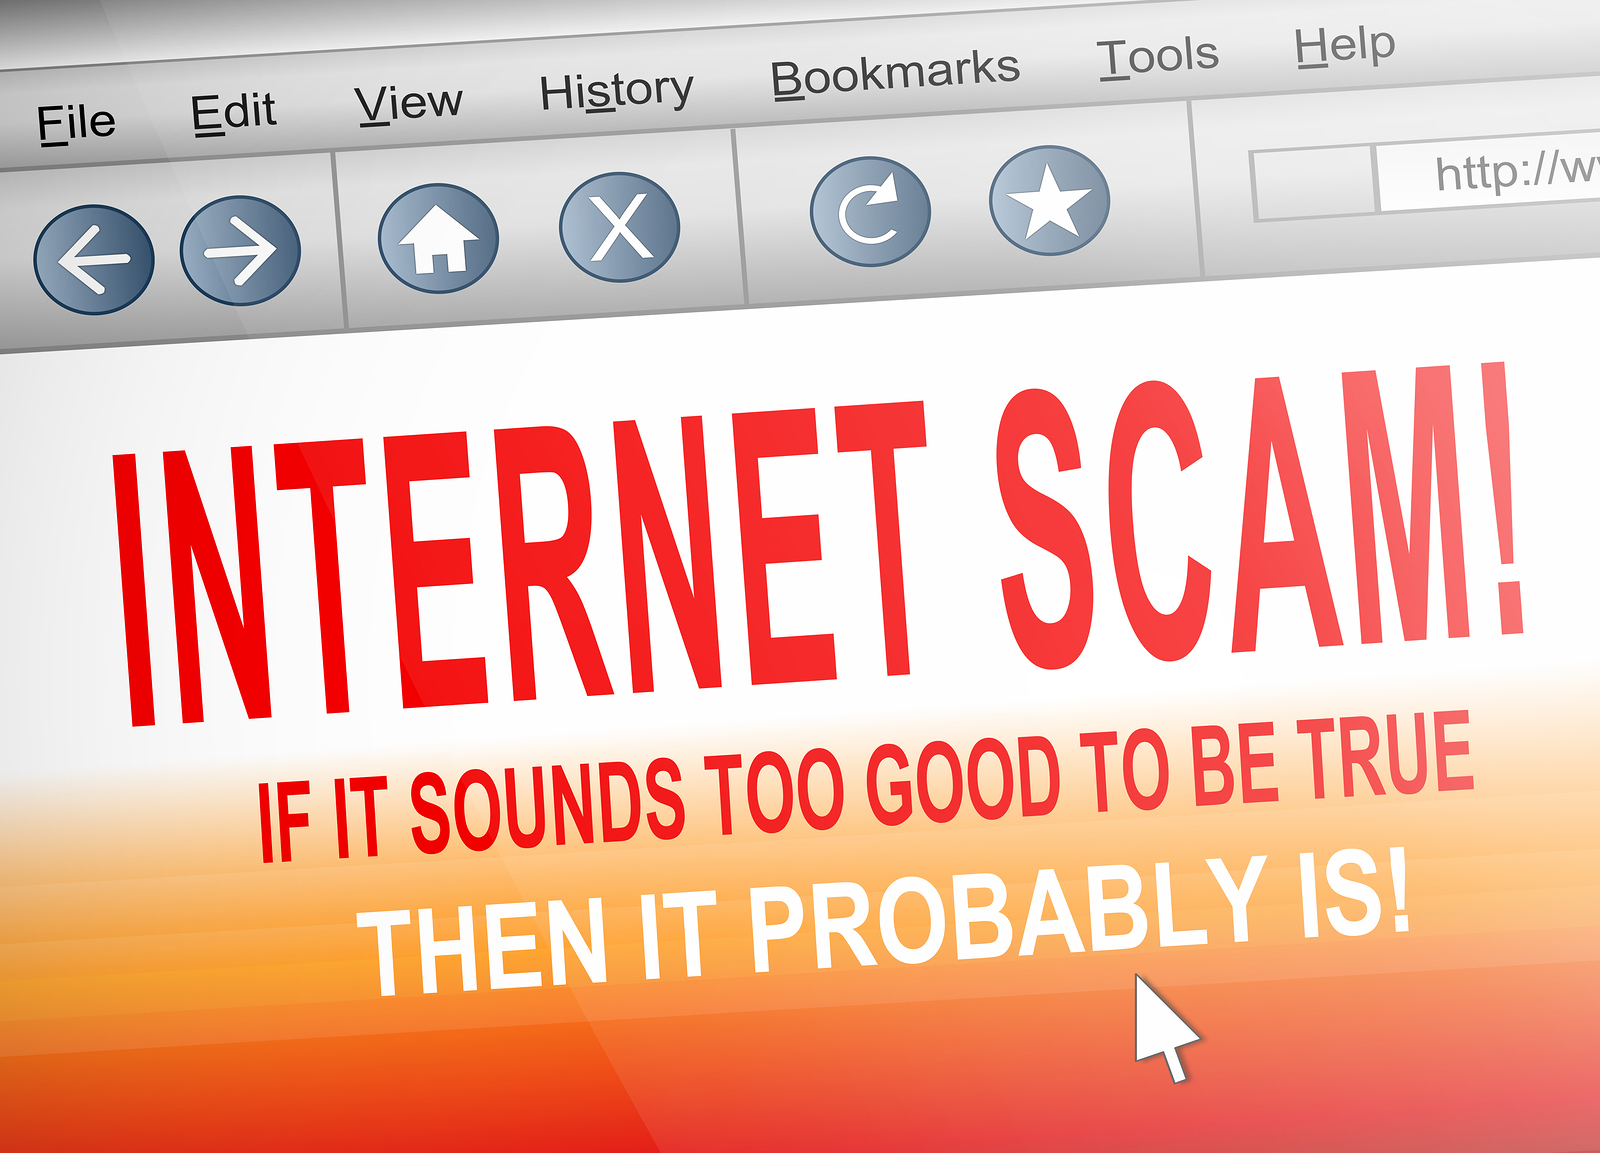 How to Spot Internet Scam